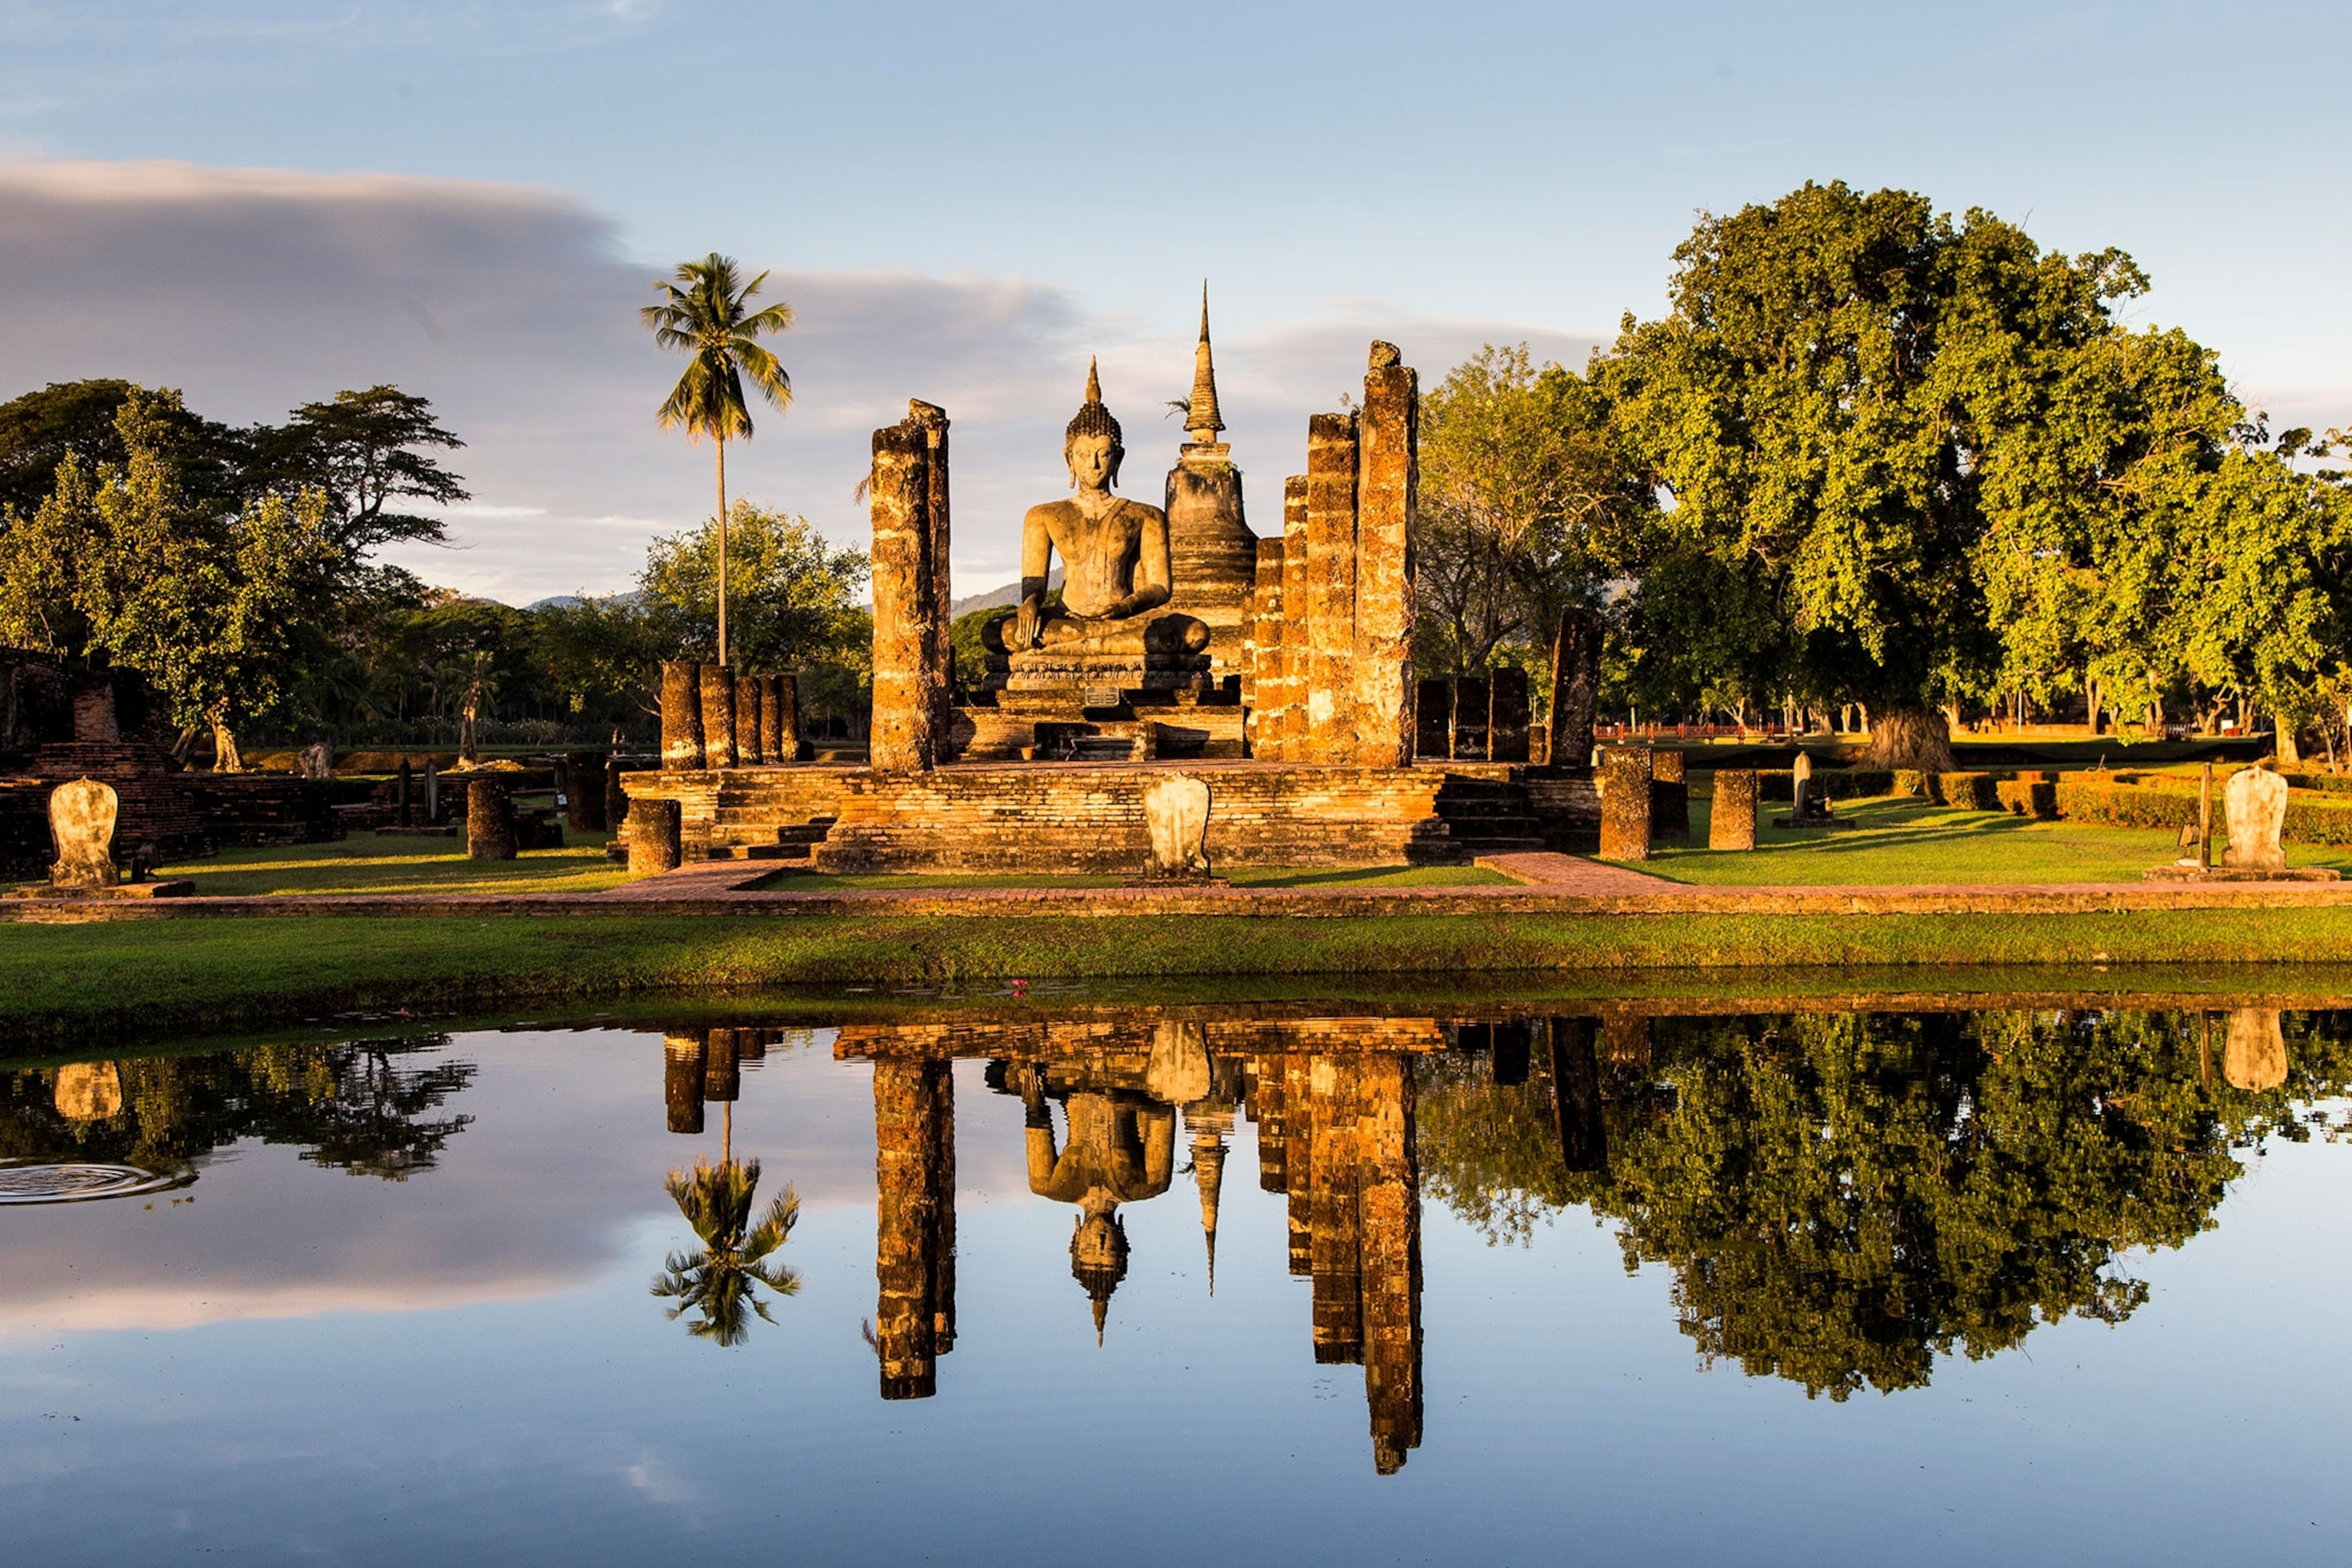 A guide to the ruins of Sukhothai, Thailand